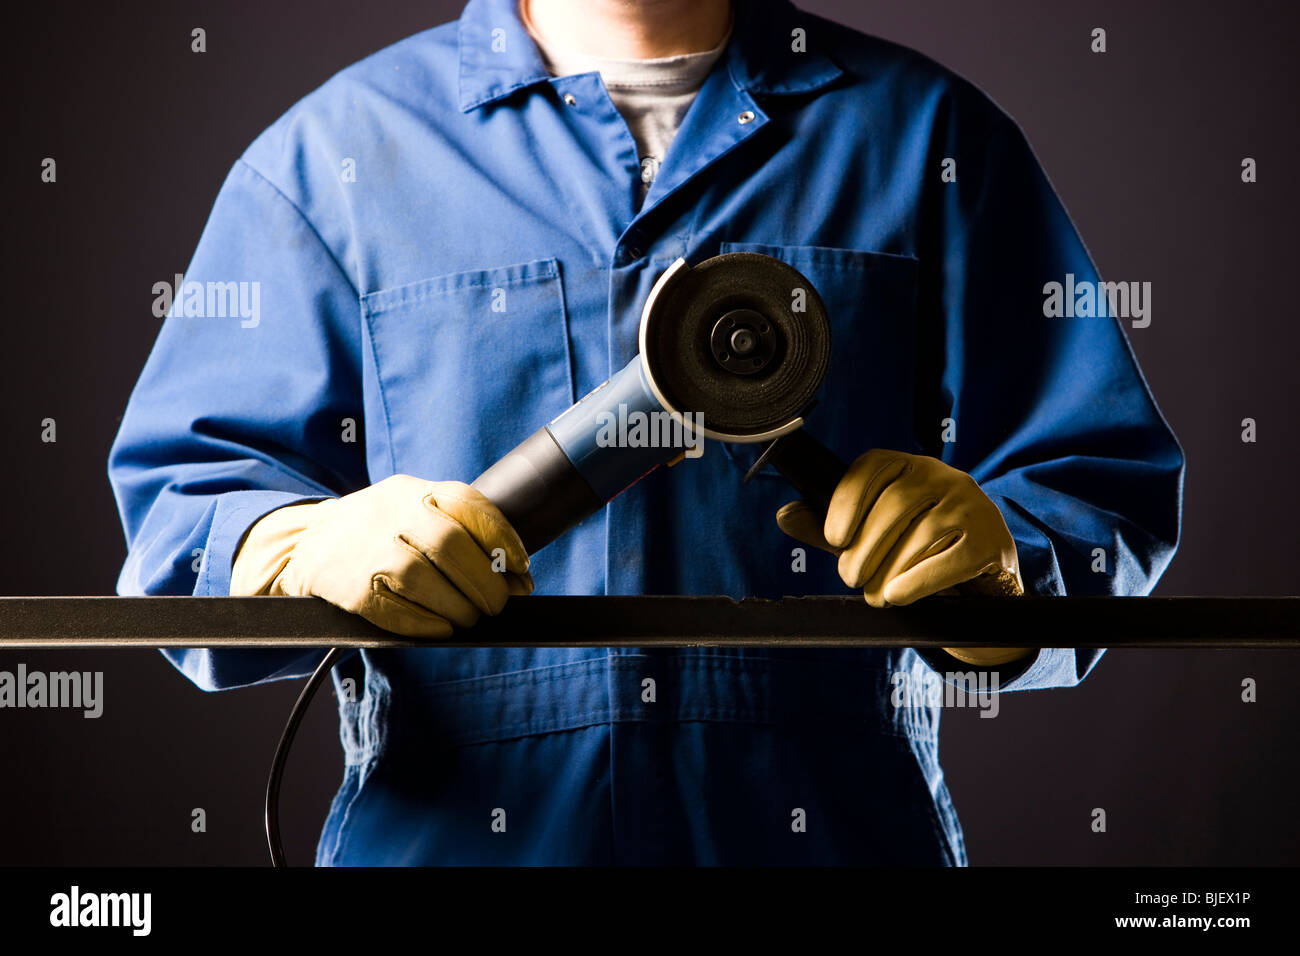 man in blue coveralls with a power grinder - Stock Image